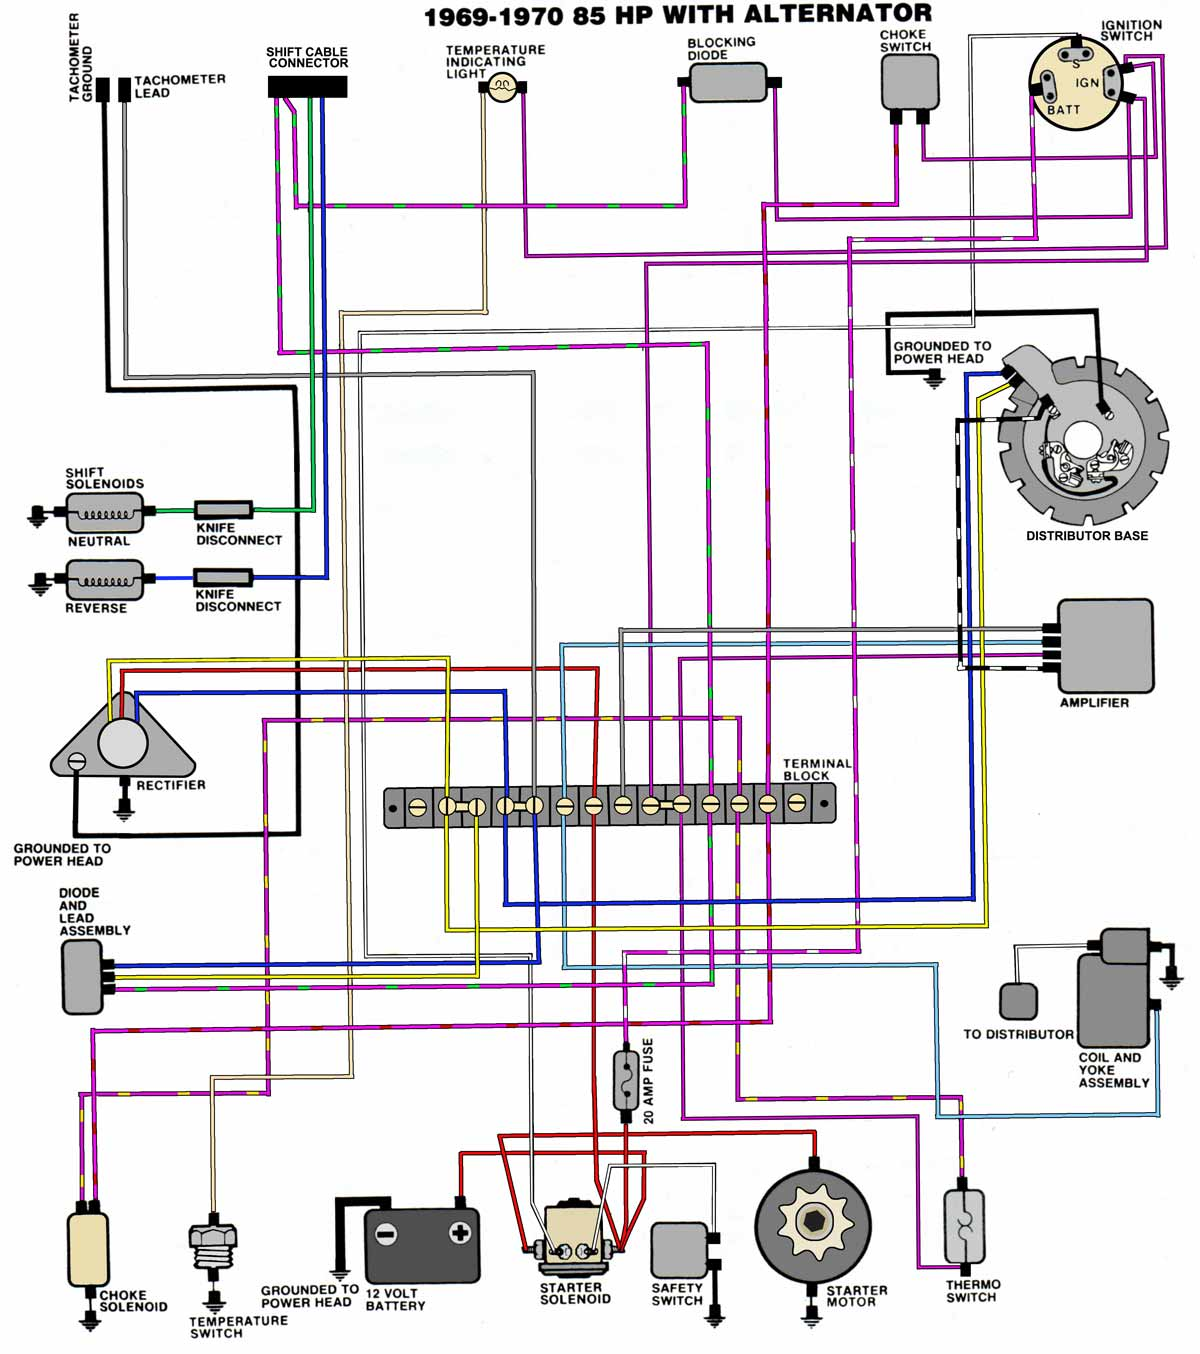 Evinrude Johnson Outboard Wiring Diagrams Mastertech Marine Diagram For Amplifier V 4 85 Hp Motors